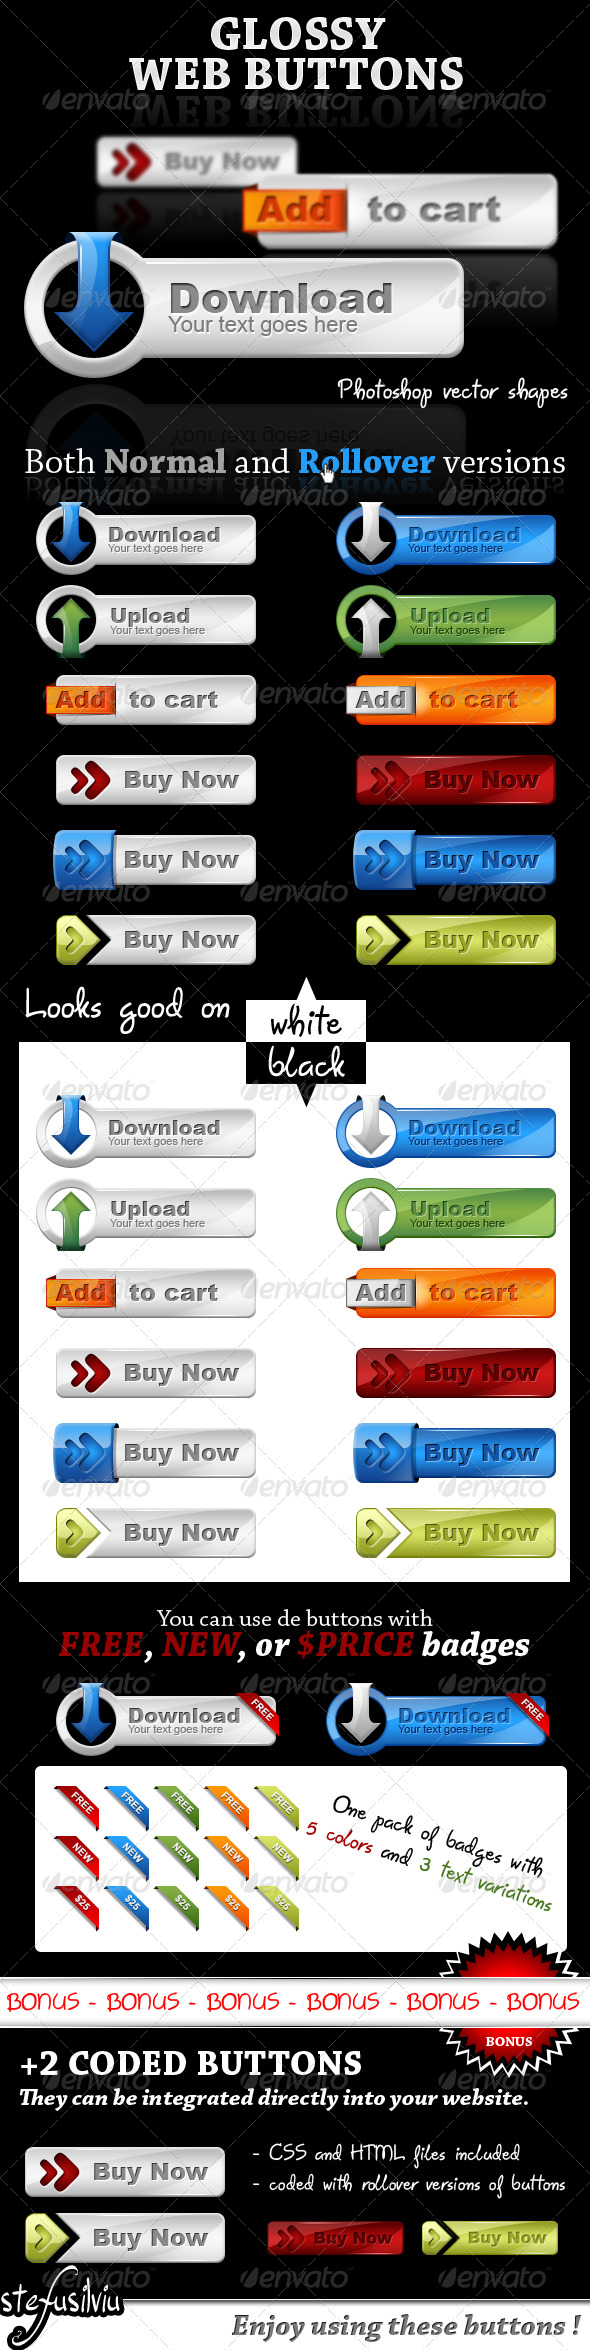 Glossy web buttons - web 2.0 style - Buttons Web Elements